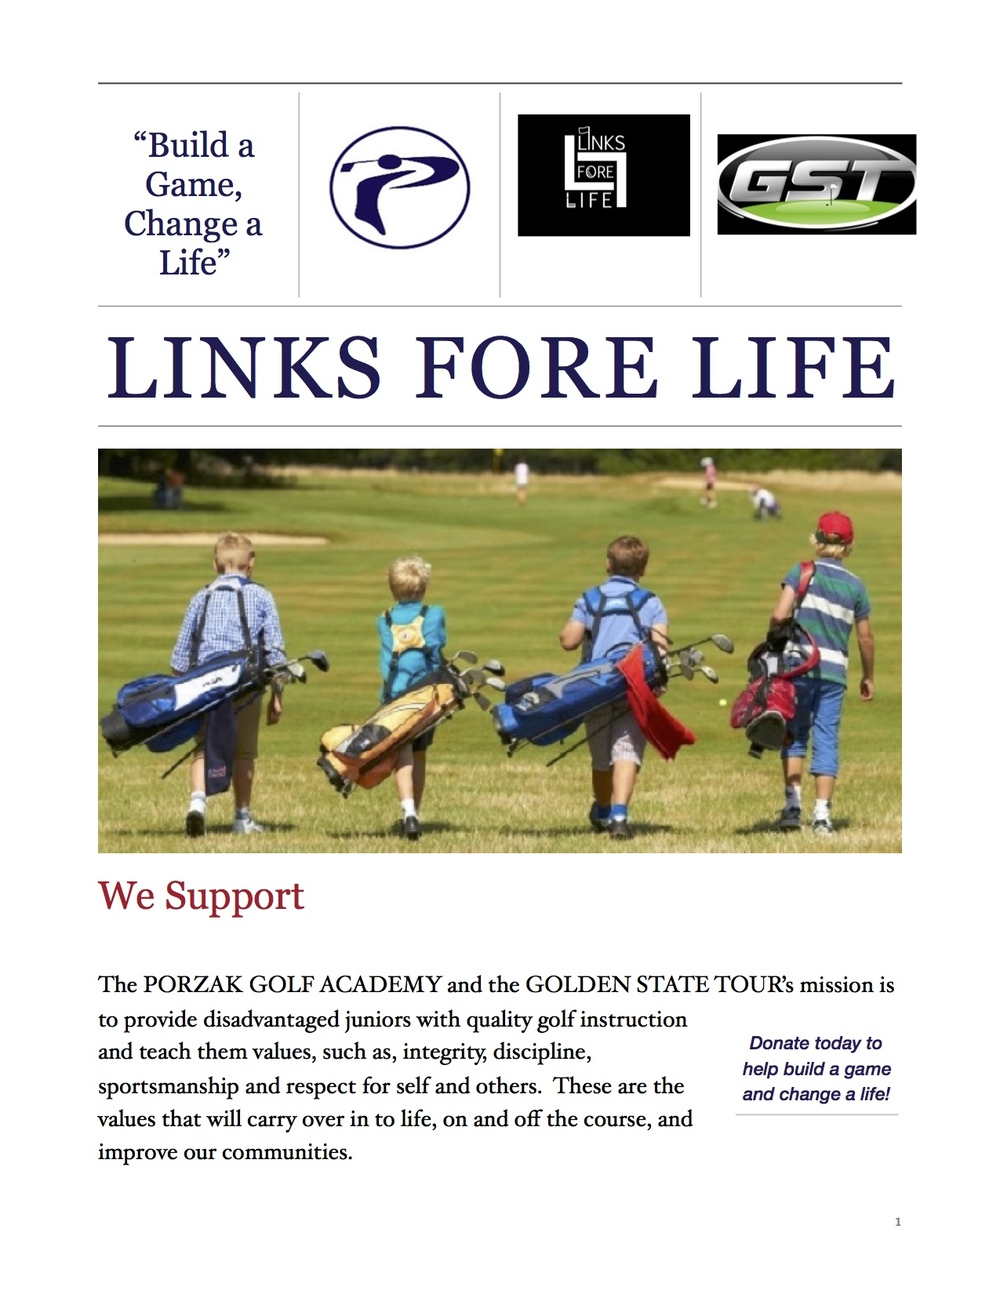 CLICK HERE TO DONATE.  100% OF DONATIONS GO TO LINKS FORE LIFE ~ THANK YOU FOR YOUR SUPPORT,